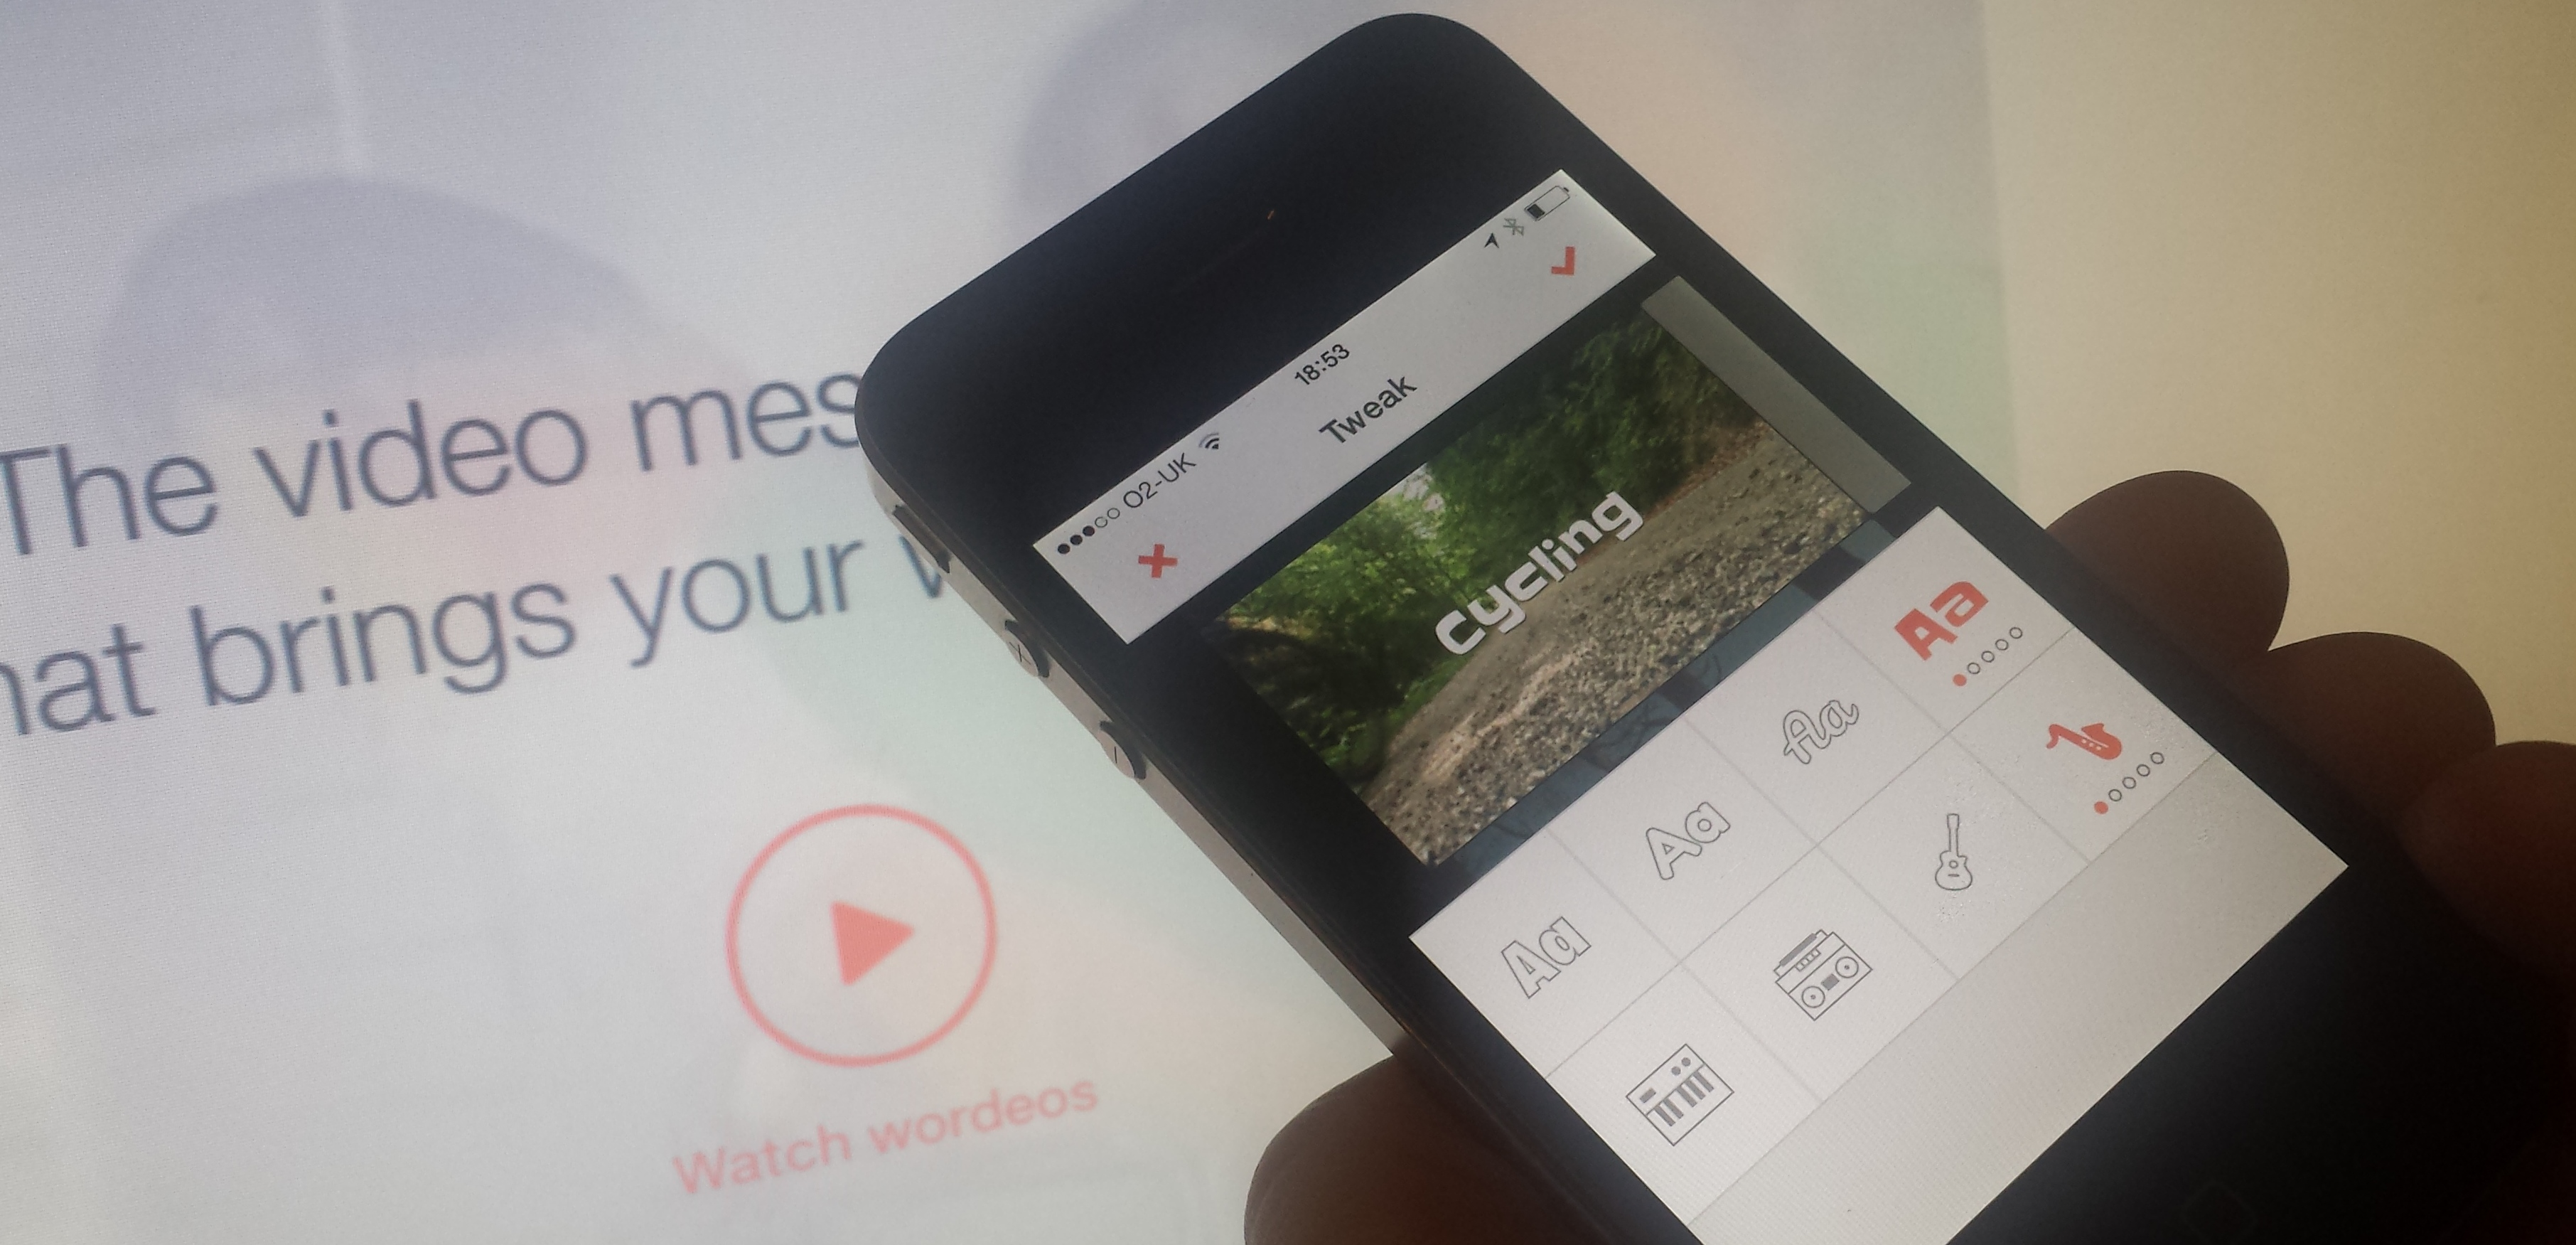 Wordeo: A new video-messaging social network that lets you tap Getty for content